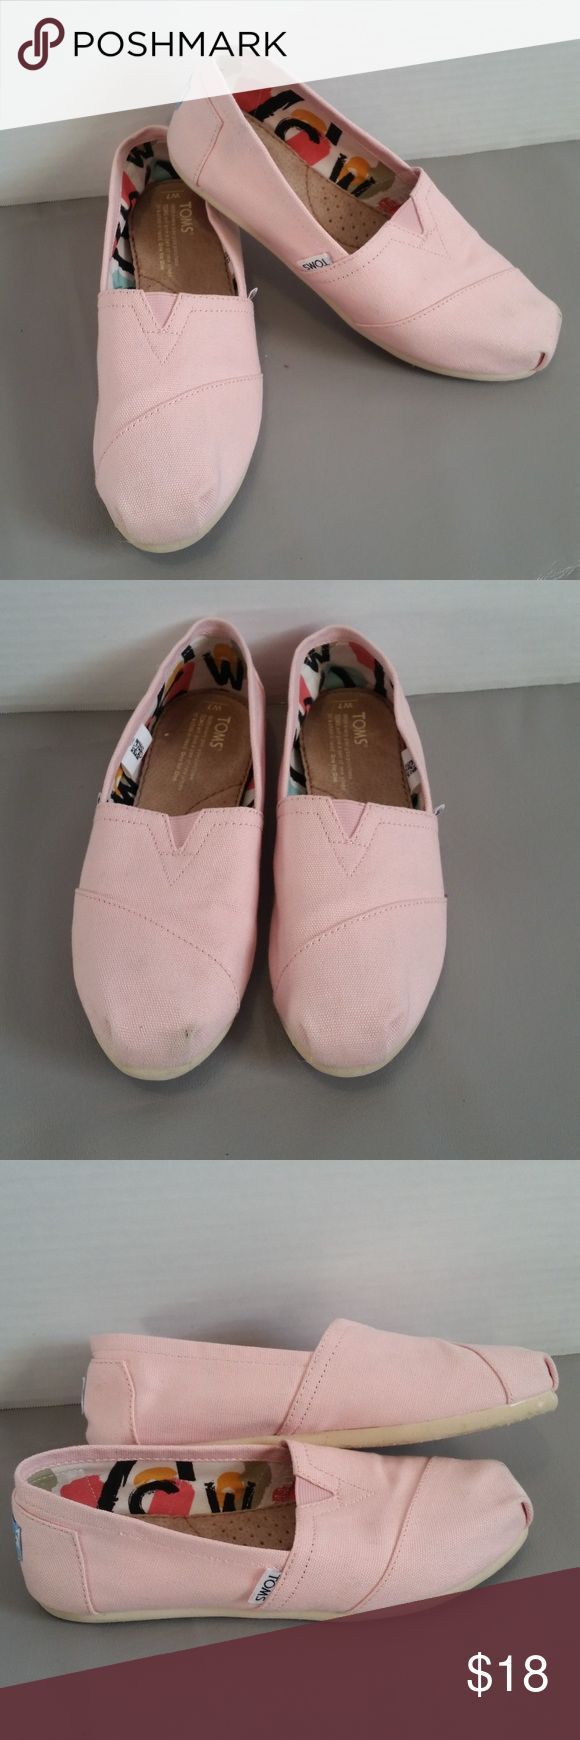 Pale pink Toms Adorable pale pink canvas Toms!  Classic Toms styling in a lightweight, comfortable canvas General very light wear/smudges small spot on the corner of the right toe light smudge on the back of the right heel at the bottom  No wear to the inside of the shoe Overall very good condition! TOMS Shoes Flats & Loafers